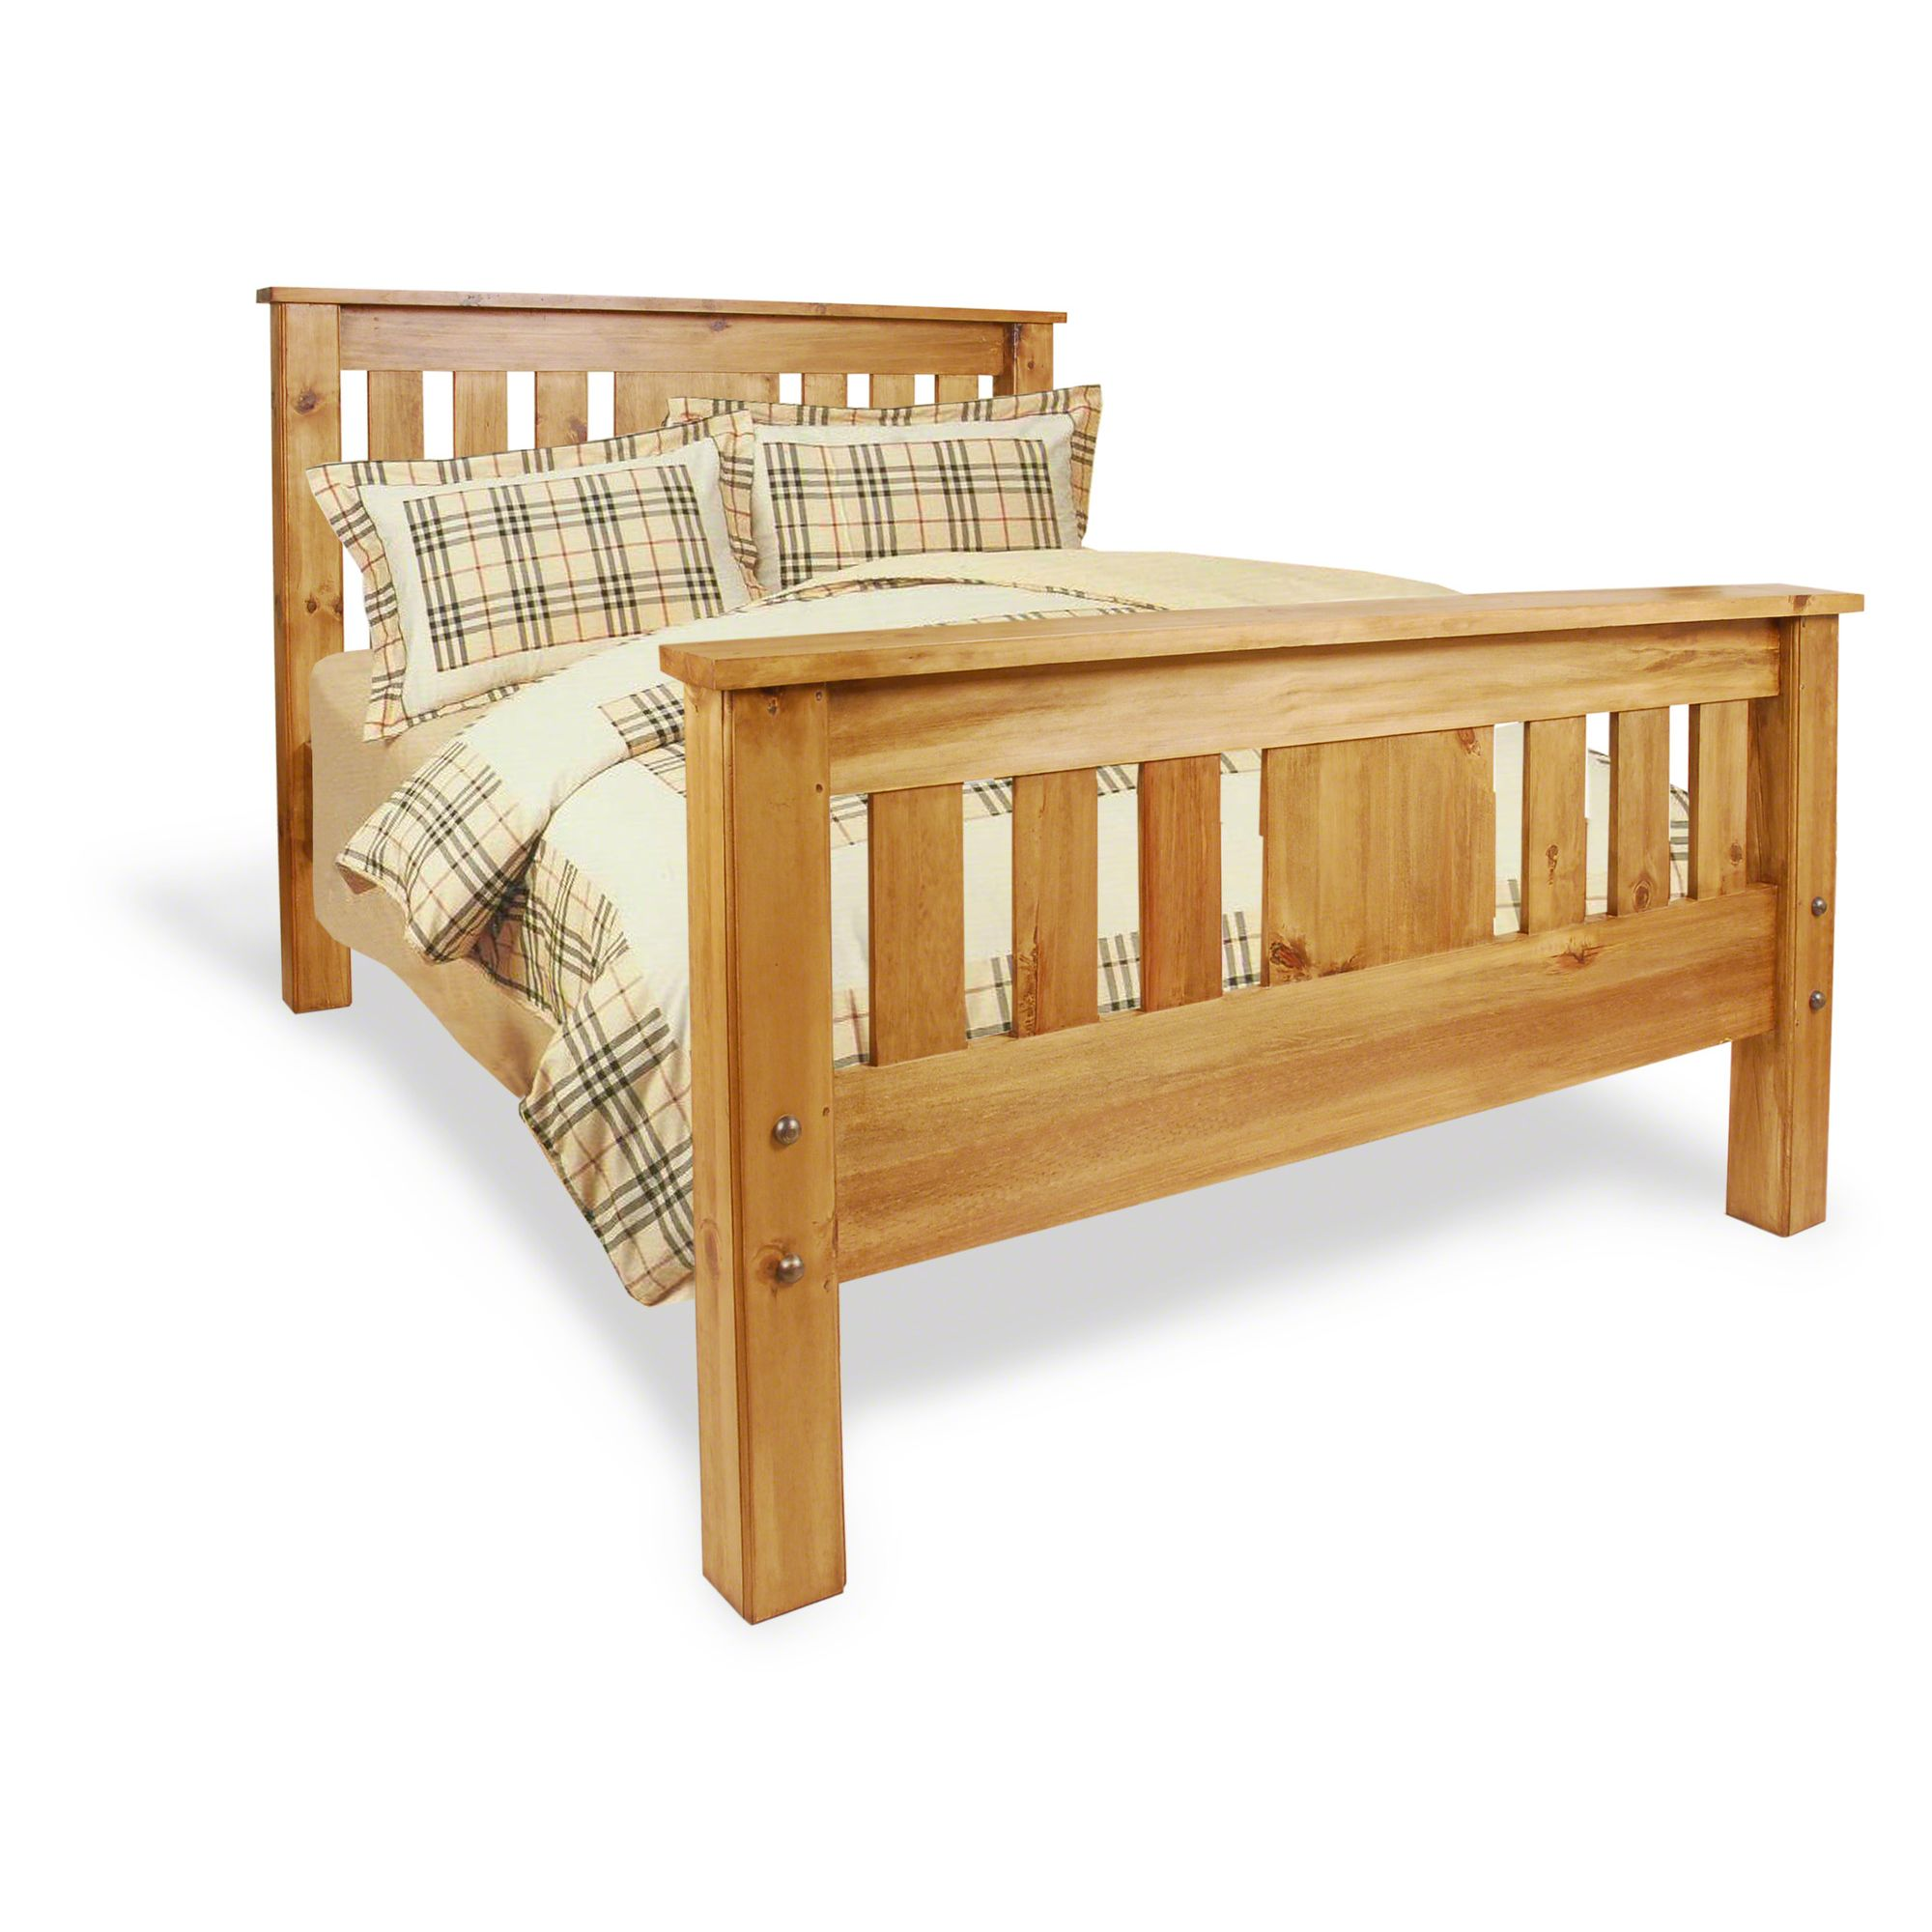 Oceans Apart Vintage Panel Bed Frame - King at Tesco Direct